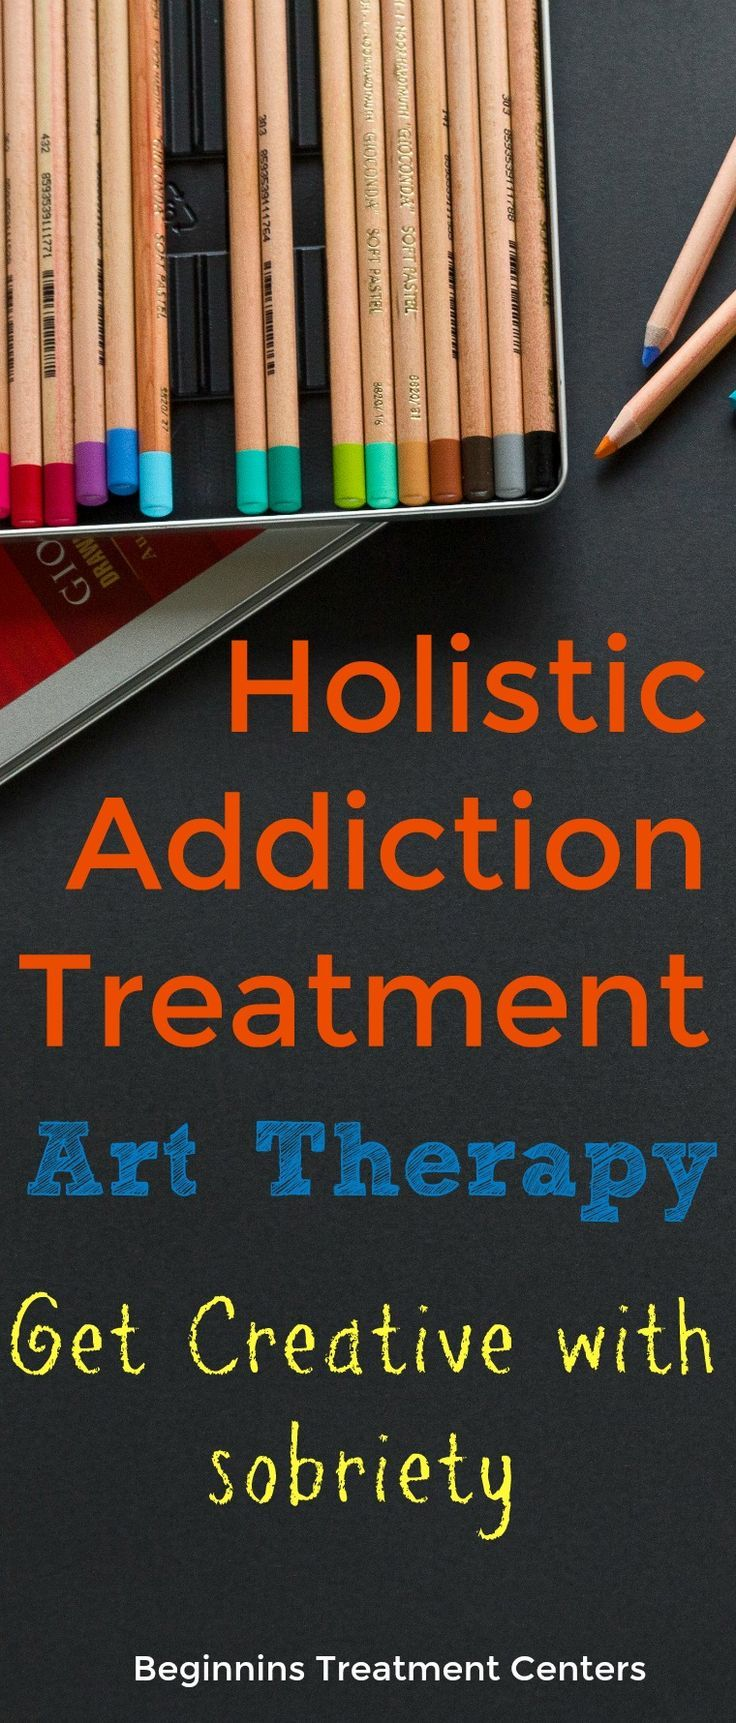 Art therapy is an umbrella term to describe any form of treatment that utilizes the arts. Art therapy to treat addiction, for example, might mean that whenever the urge to use strikes, the person will pick up a pen and paper instead